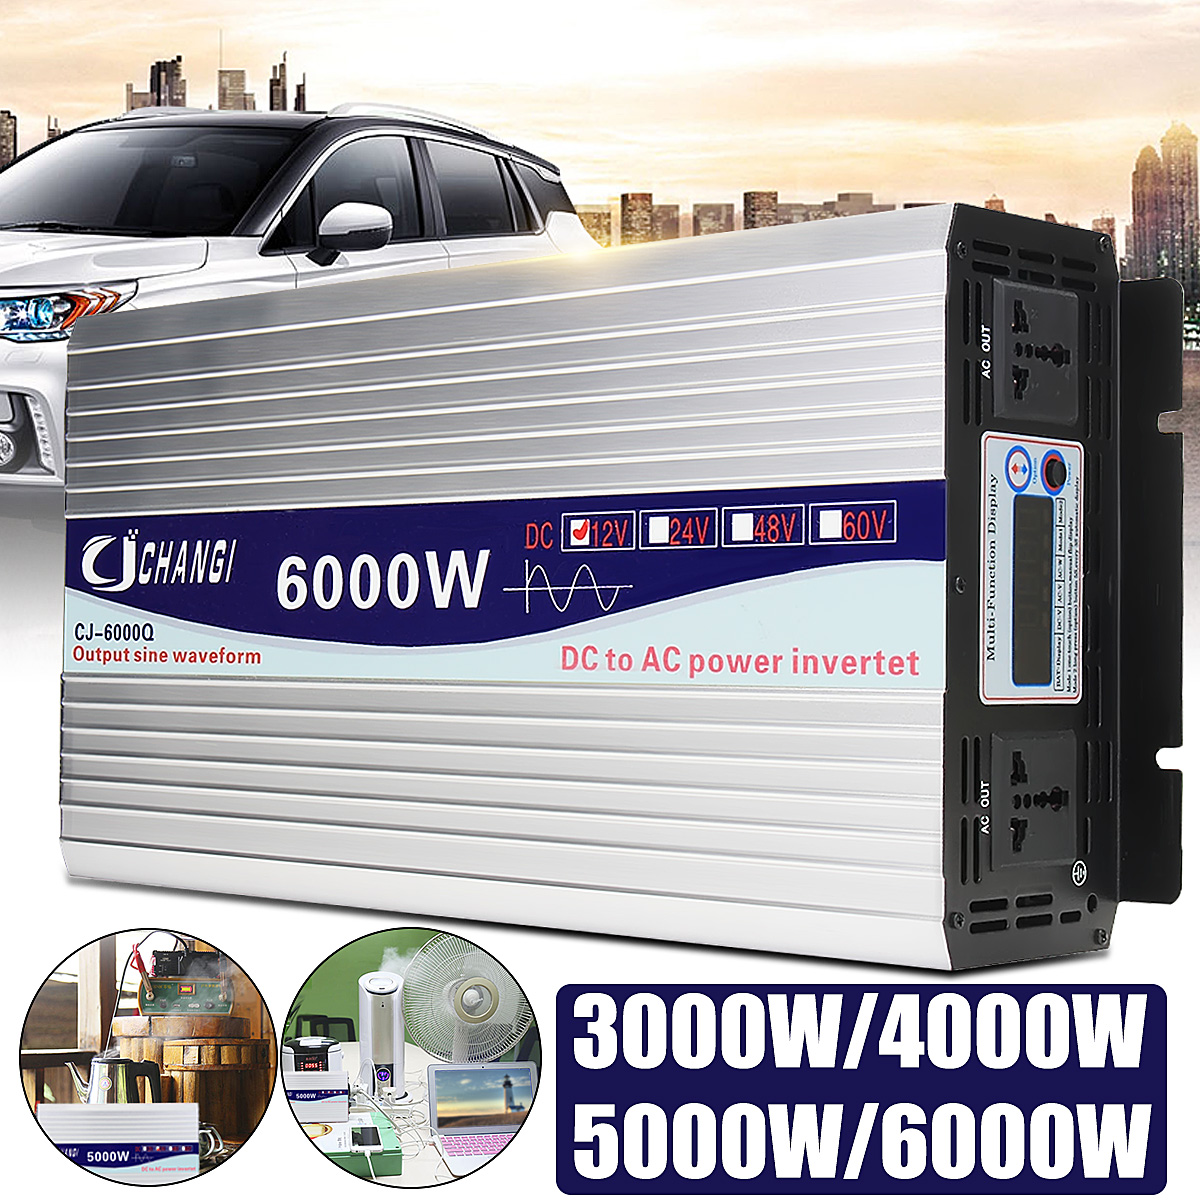 <font><b>Inverter</b></font> <font><b>12V</b></font> <font><b>220V</b></font> Intelligente Spannung transformator Reine Sinus Solar Power <font><b>Inverter</b></font> 12 V/24 V Zu <font><b>220V</b></font> 3000 W/4000 W/5000 W/6000 W image